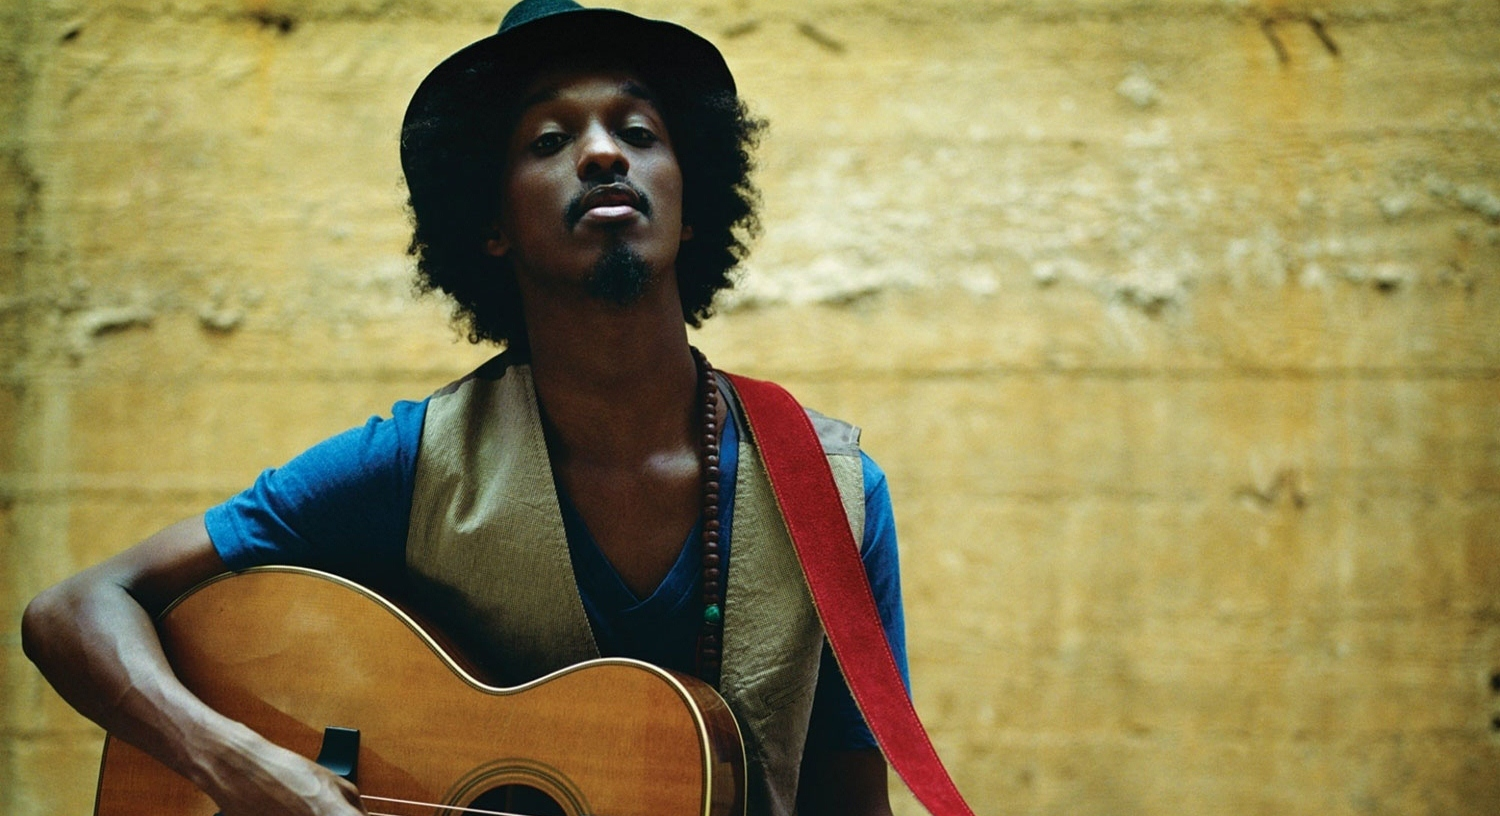 Alisa Ali Chooses K'Naan as one of her favorite FUV sessions